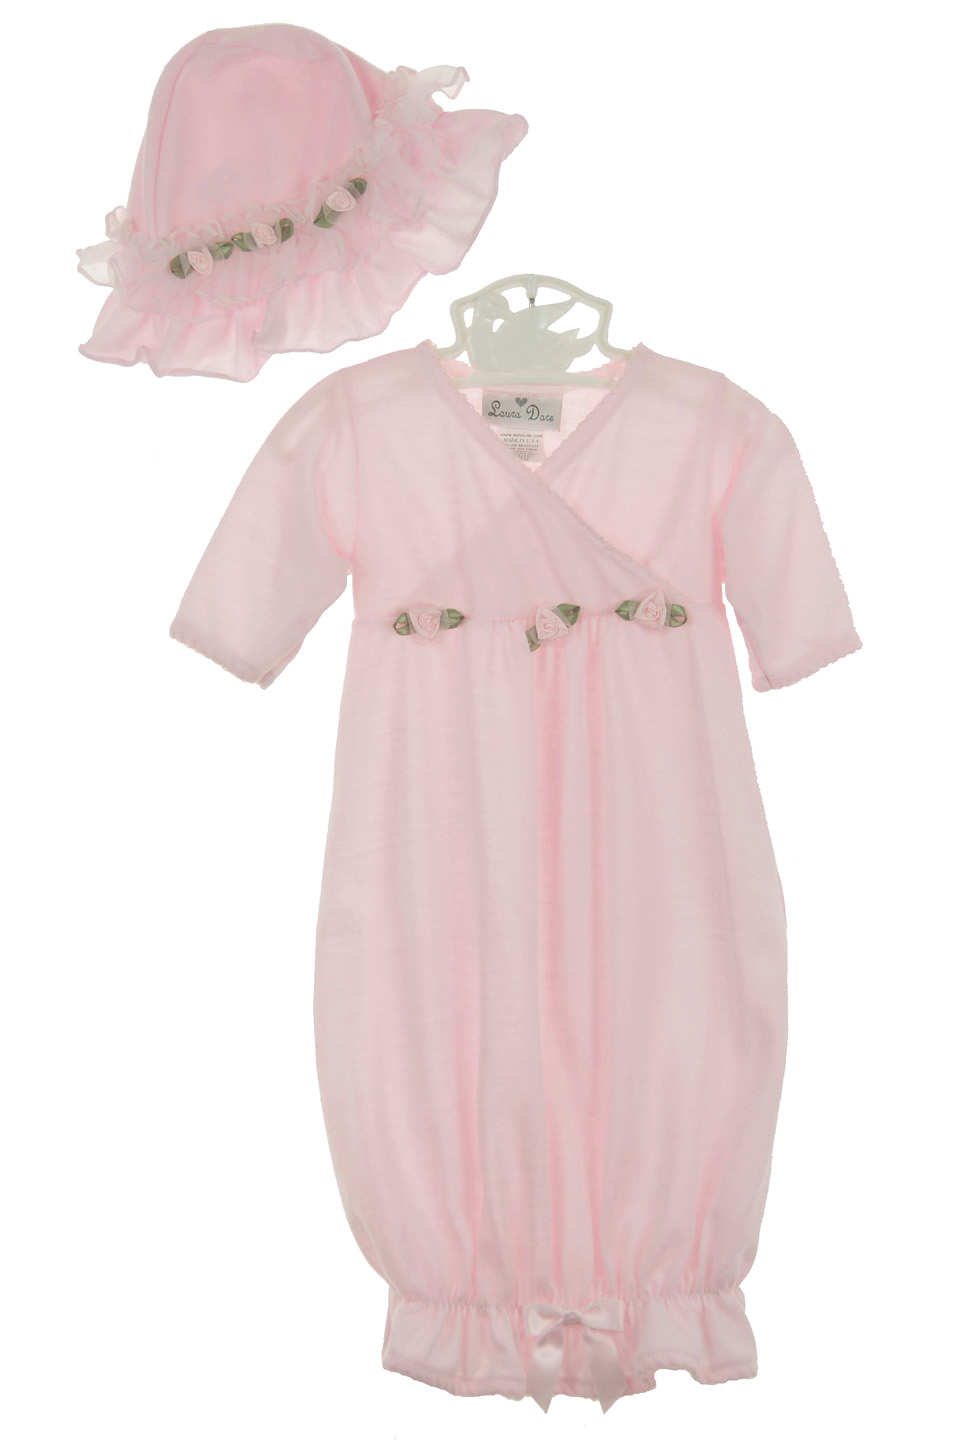 pink knit newborn gown and hat set with pink ribbon rosebuds,pink ...